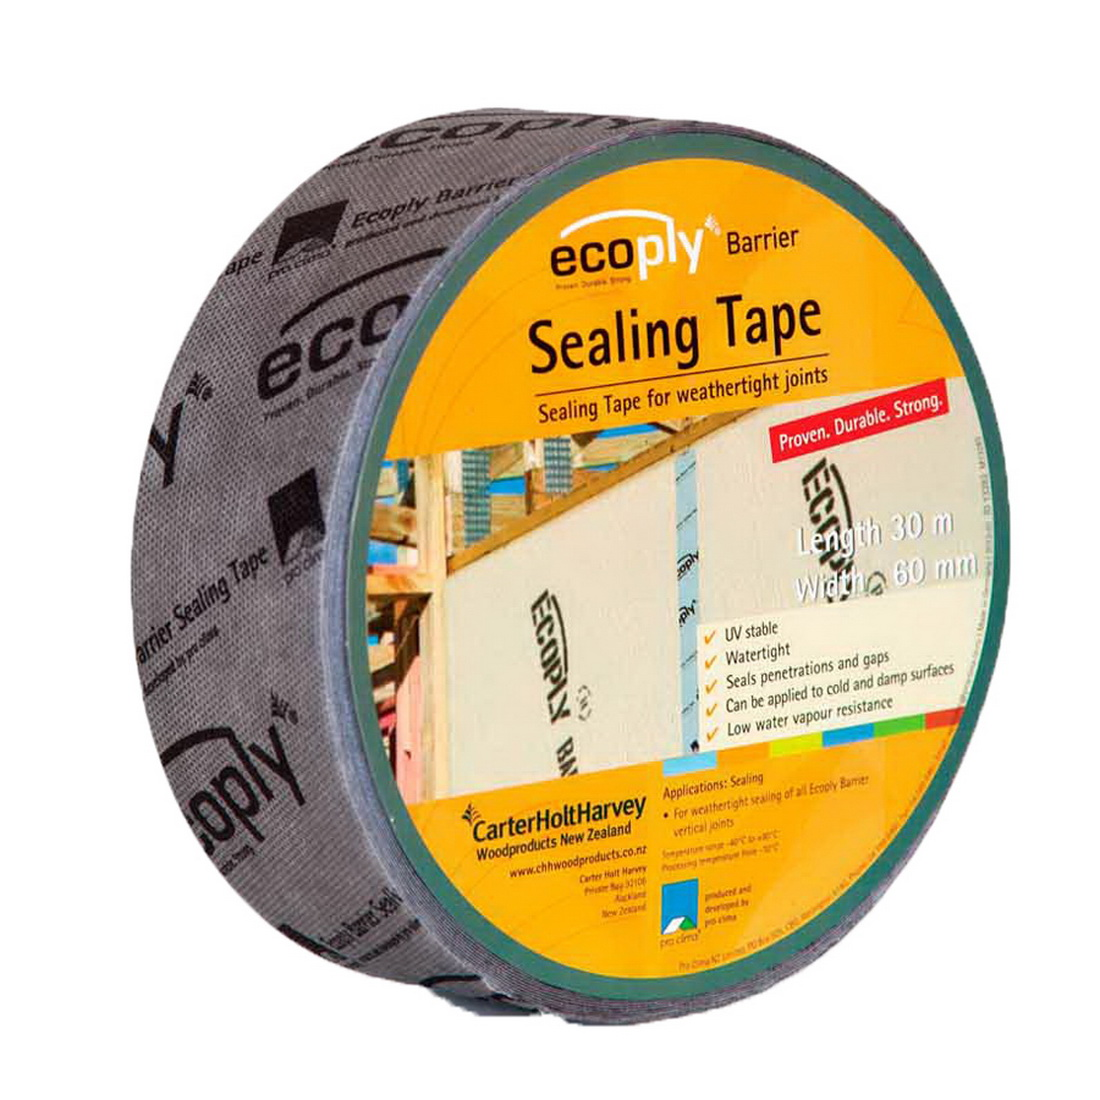 Barrier Sealing Tape 60mm x 30m